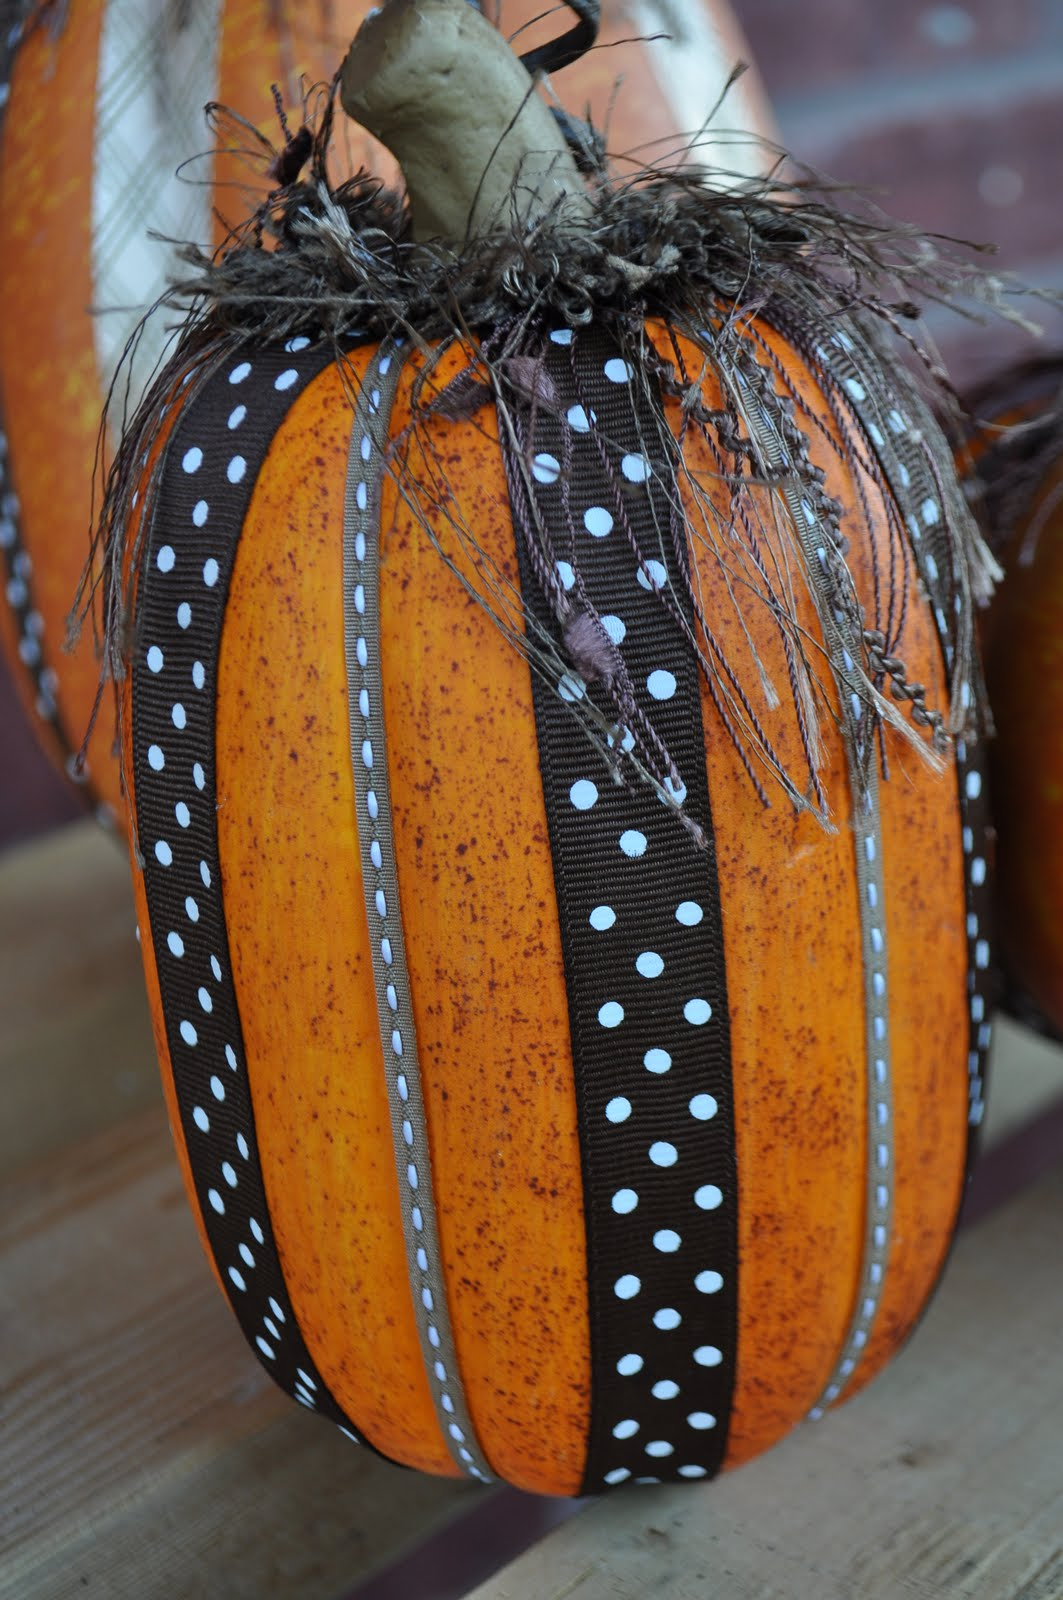 the 50 best pumpkin decoration and carving ideas for halloween 2016. Black Bedroom Furniture Sets. Home Design Ideas